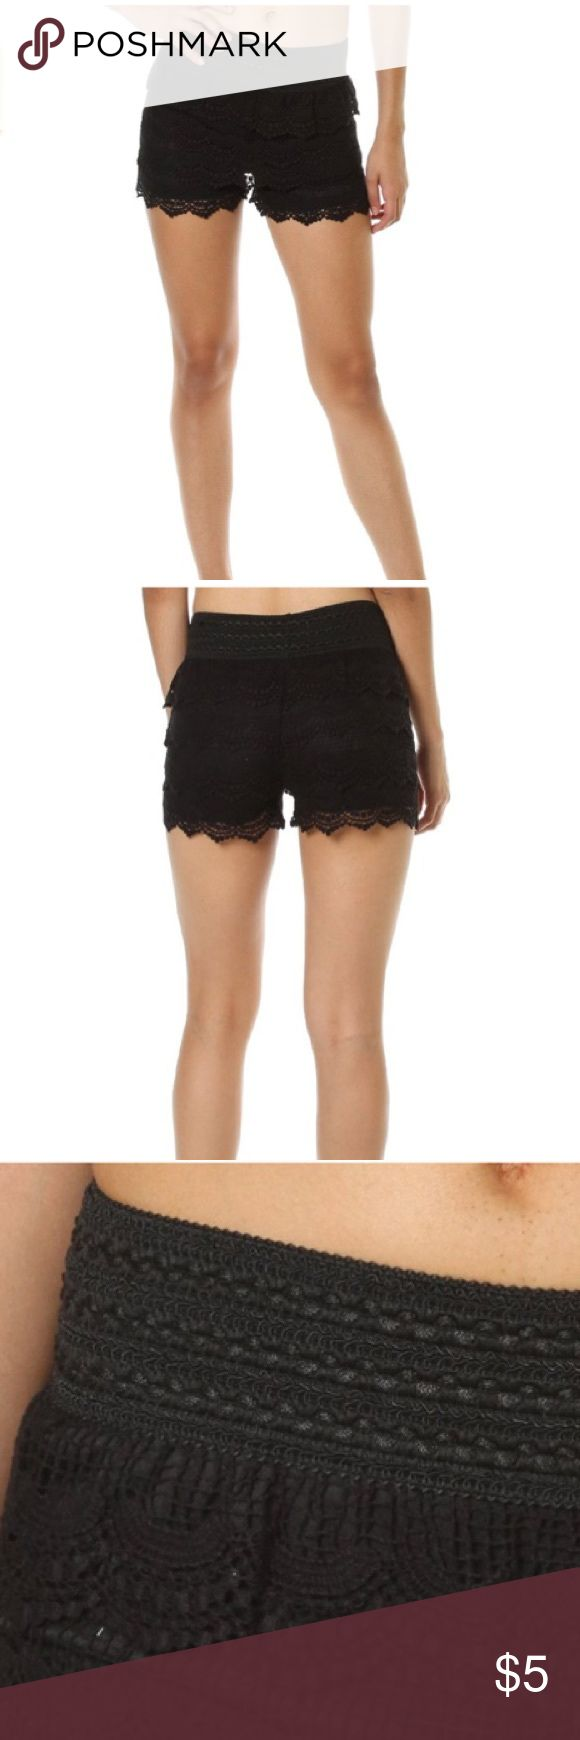 Pink Clubwear Crochet Black Shorts Size S Pink Clubwear Esther Cullim women's tassel edge Black crocheted shorts. They are new without tags's and run small probably would fit an extra small better then a small. Be sure to check out my other items. Thanks for looking. Pink Clubwear Shorts